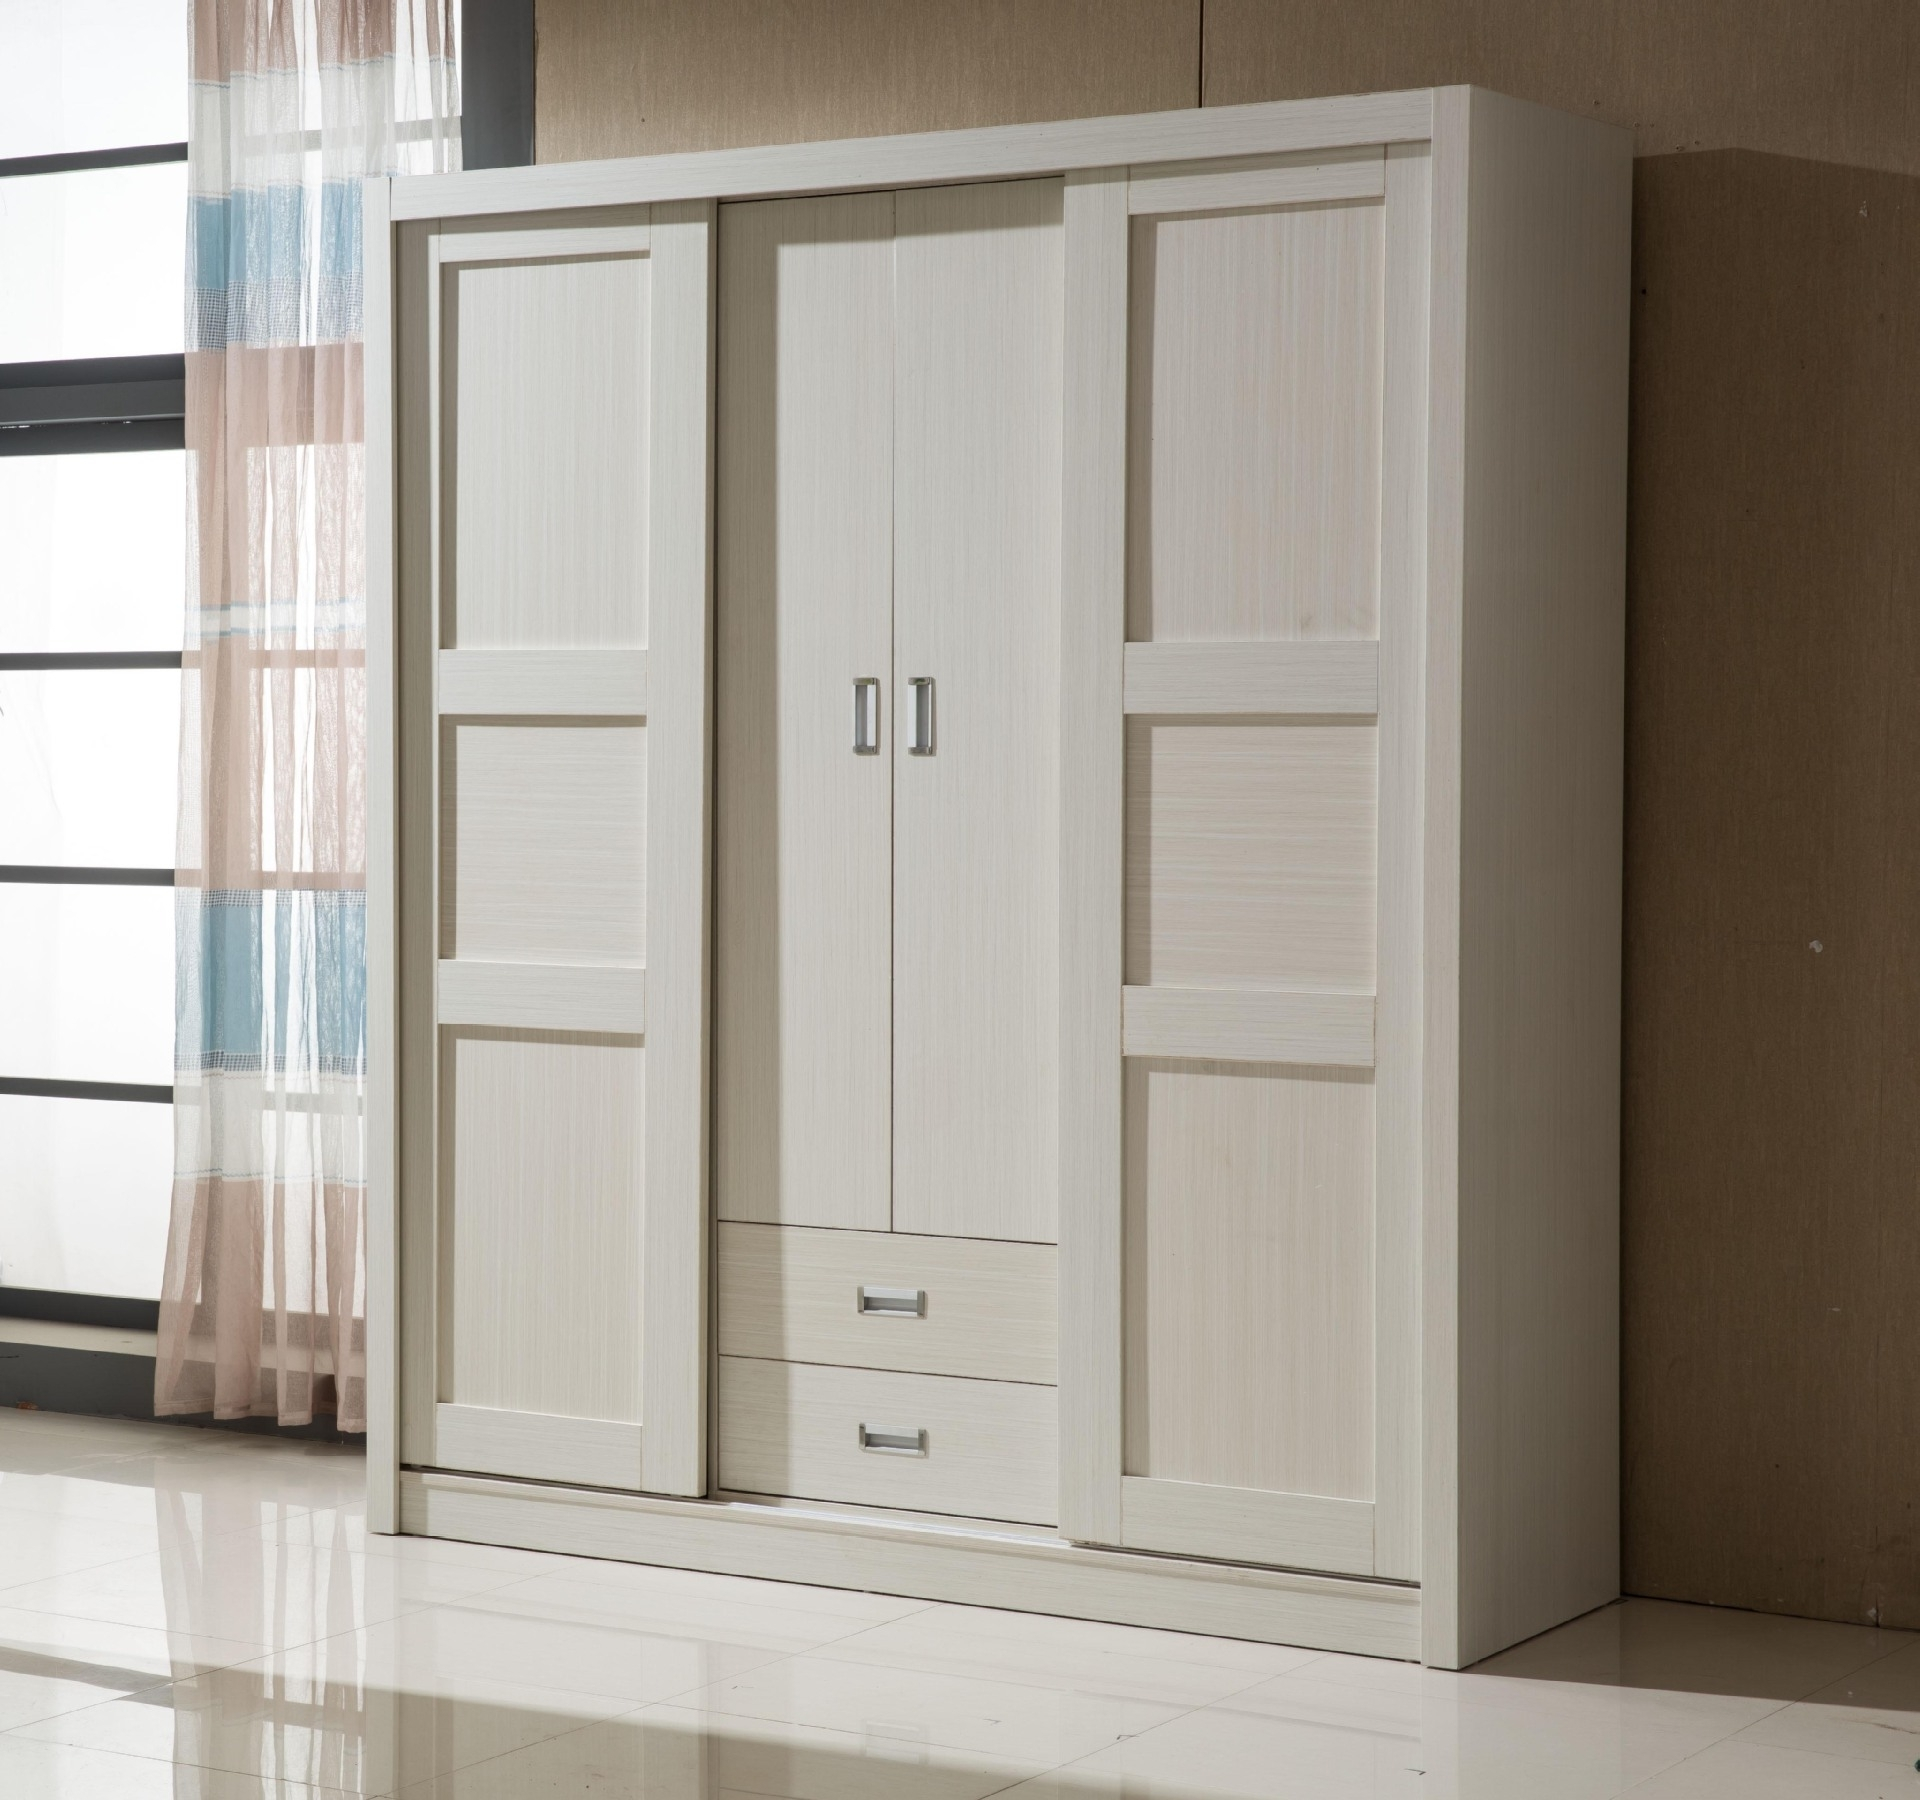 Solid Wood Wardrobe With Drawers Fitted Wardrobes Sliding Doors In Most Recent Large Wooden Wardrobes (View 13 of 15)